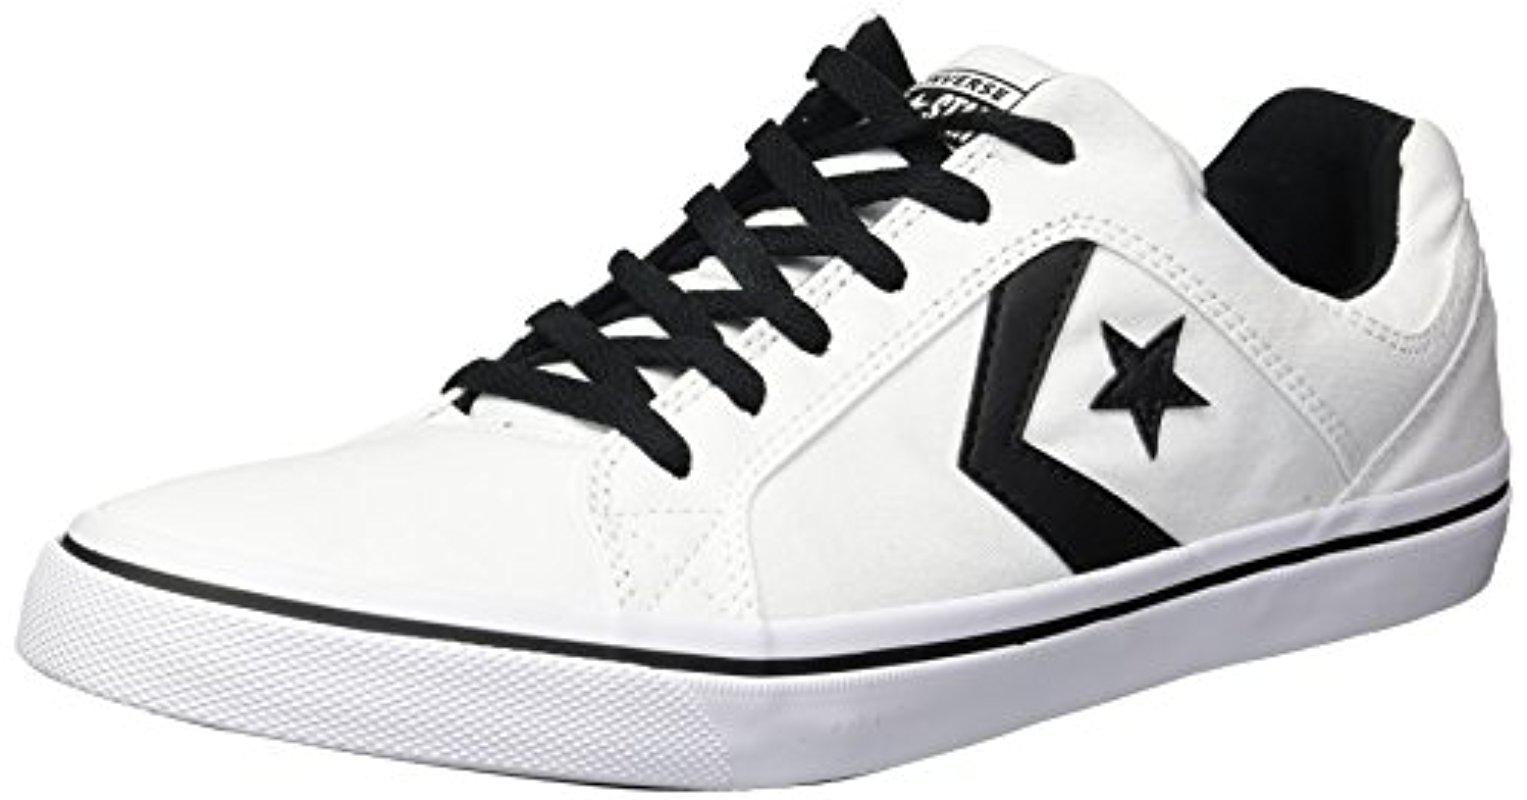 Converse El Distrito Ox Black Mens Canvas Low top Lace Up Sneakers Trainers